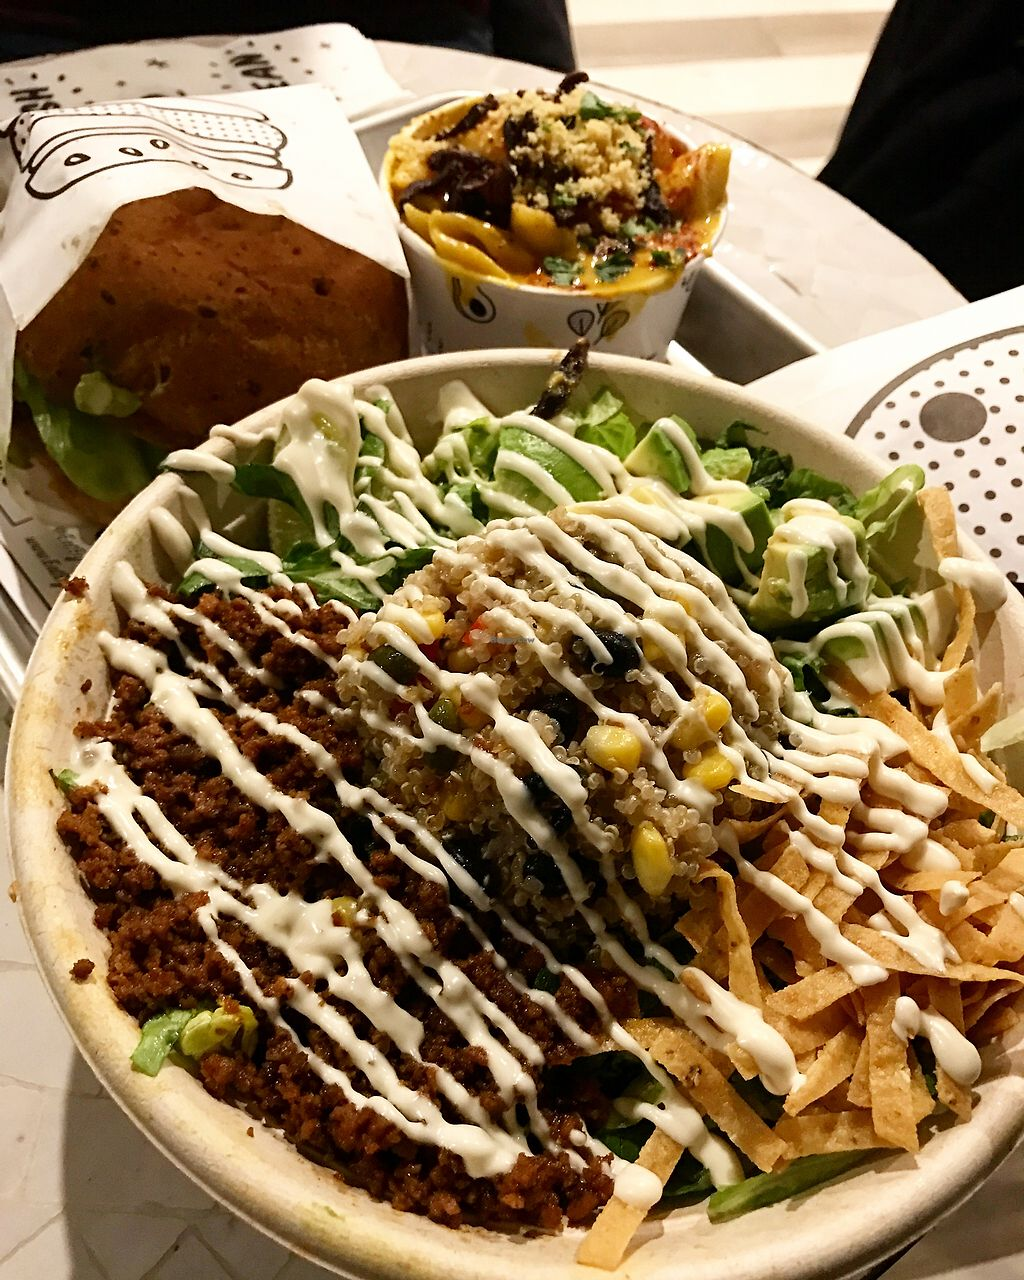 "Photo of By Chloe  by <a href=""/members/profile/bethanybee"">bethanybee</a> <br/>Quinoa taco salad with a guac burger and Mac and cheese <br/> January 29, 2018  - <a href='/contact/abuse/image/98200/352173'>Report</a>"